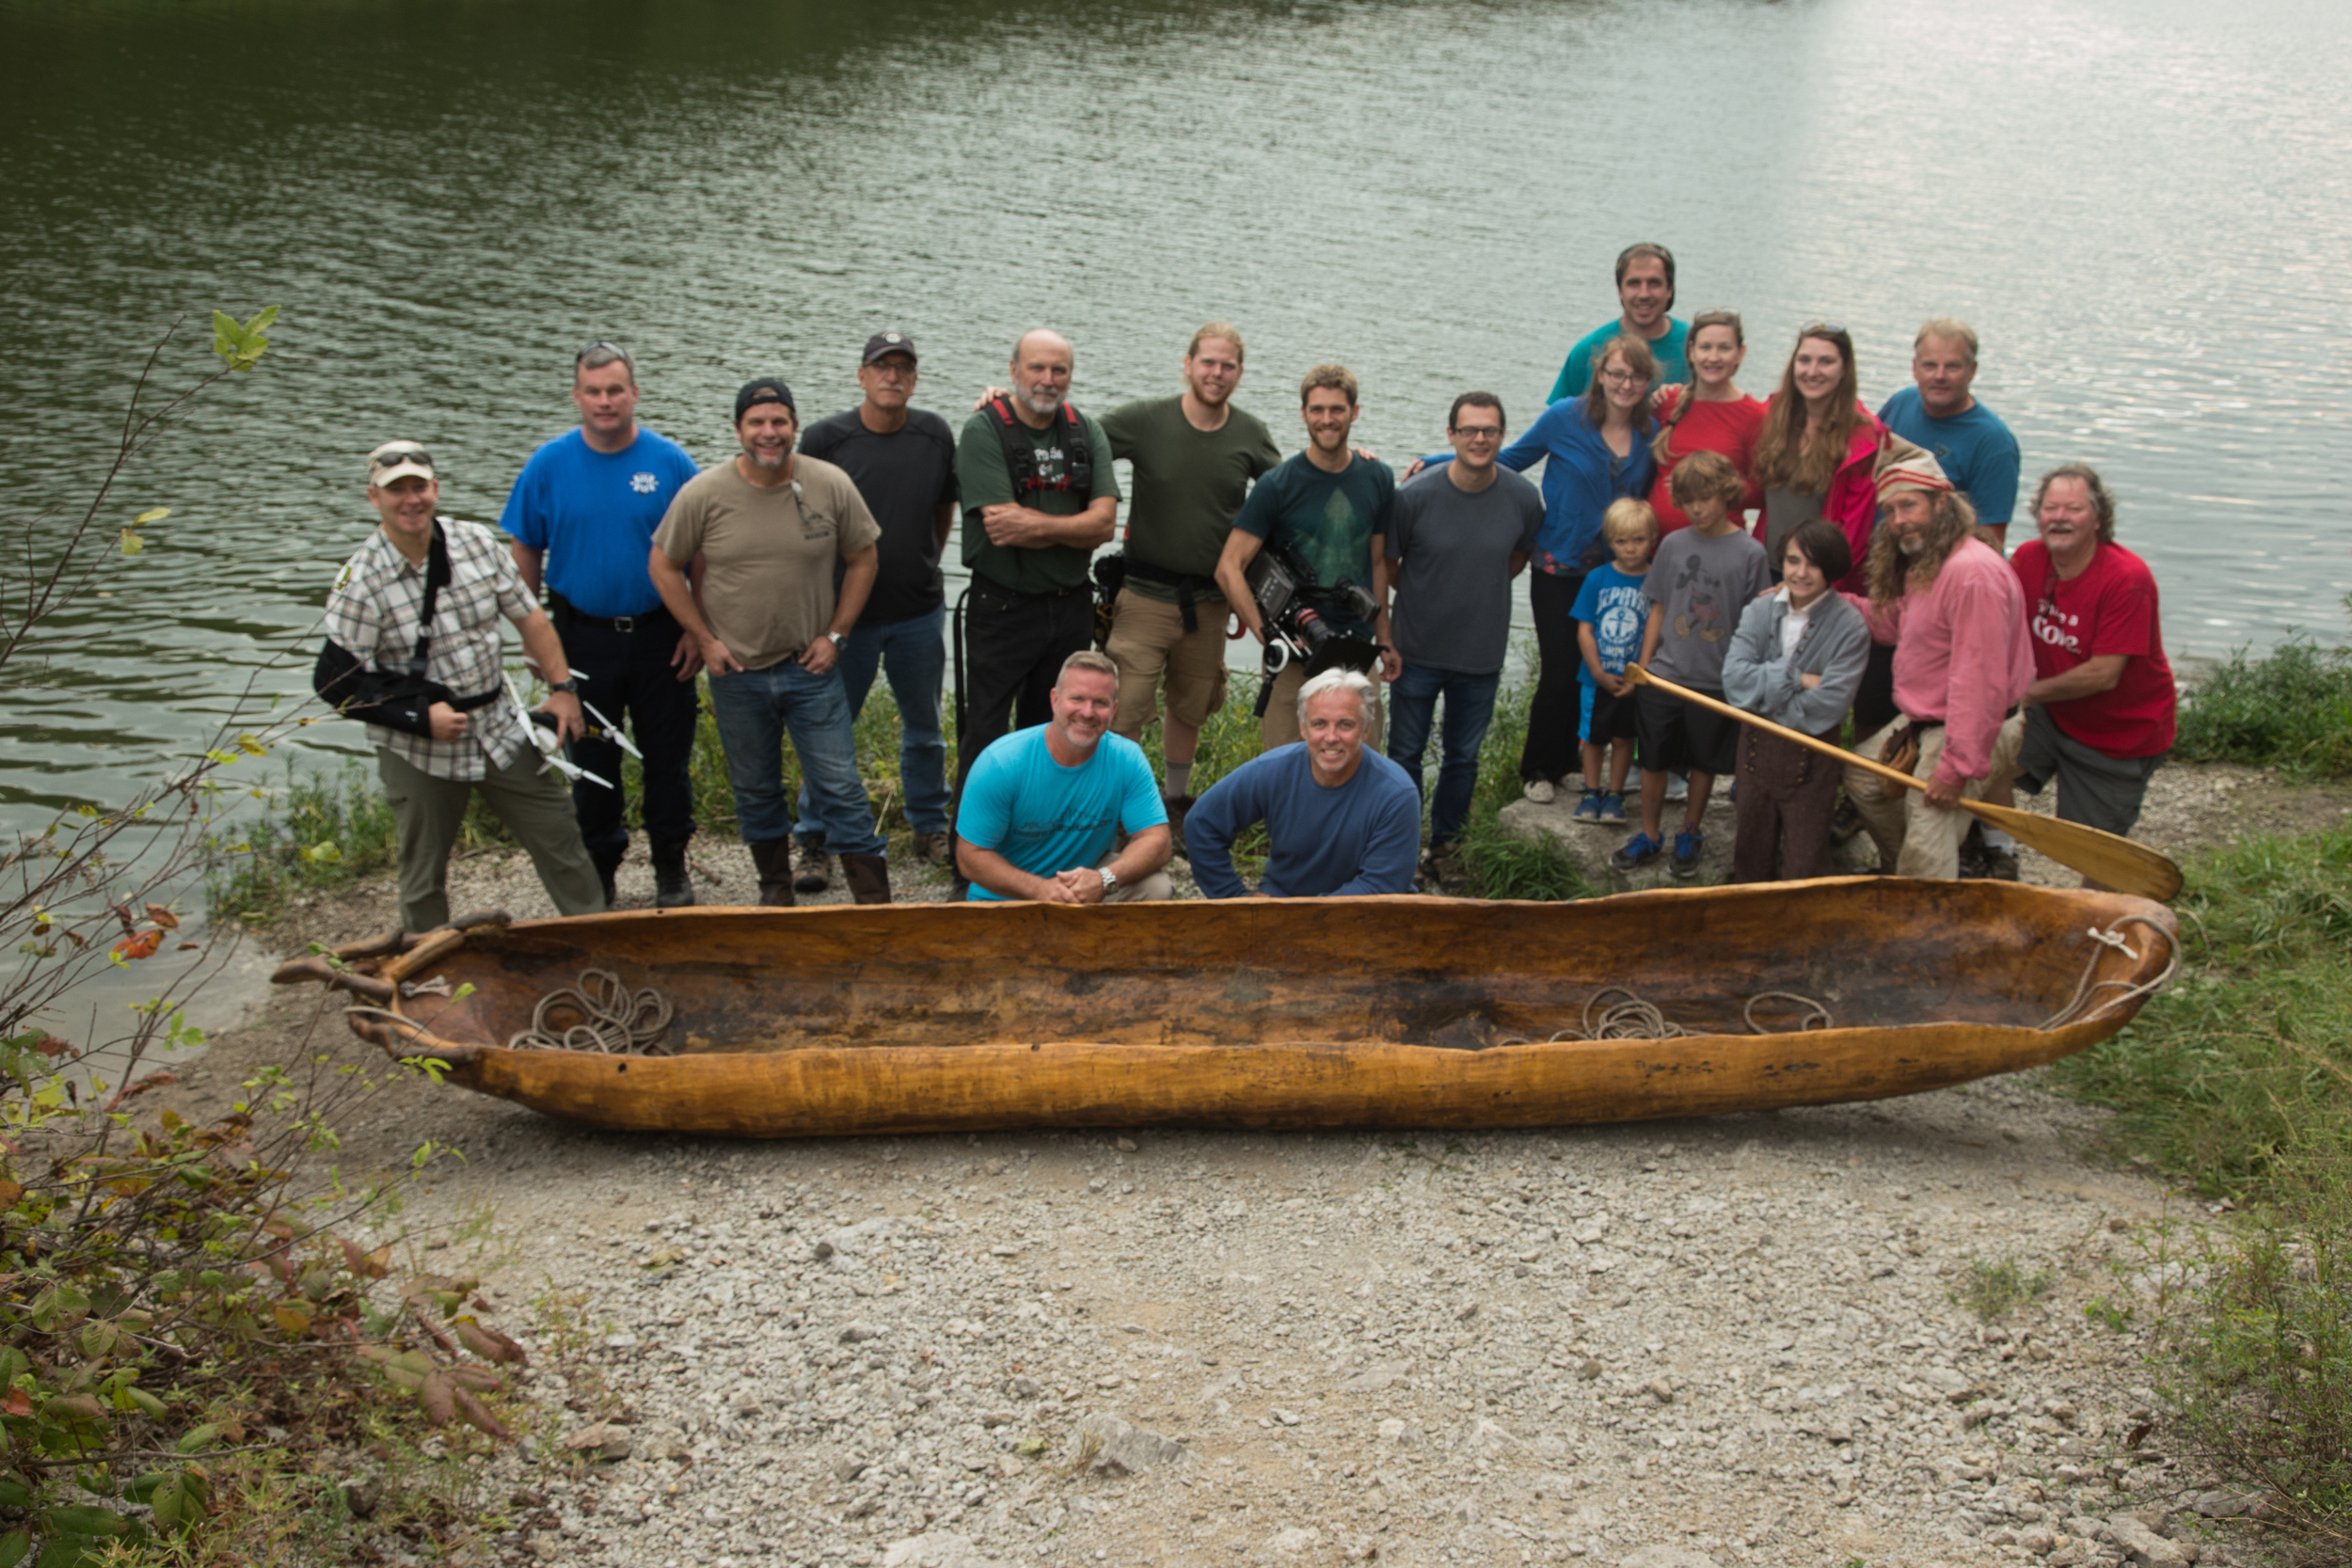 Churchhill Clark  (on right in pink shirt and liberty cap) , one of his handmade dugout canoes and the Wide Awake Films crew on location for  The American Artist: The Life & Times of George Caleb Bingham .